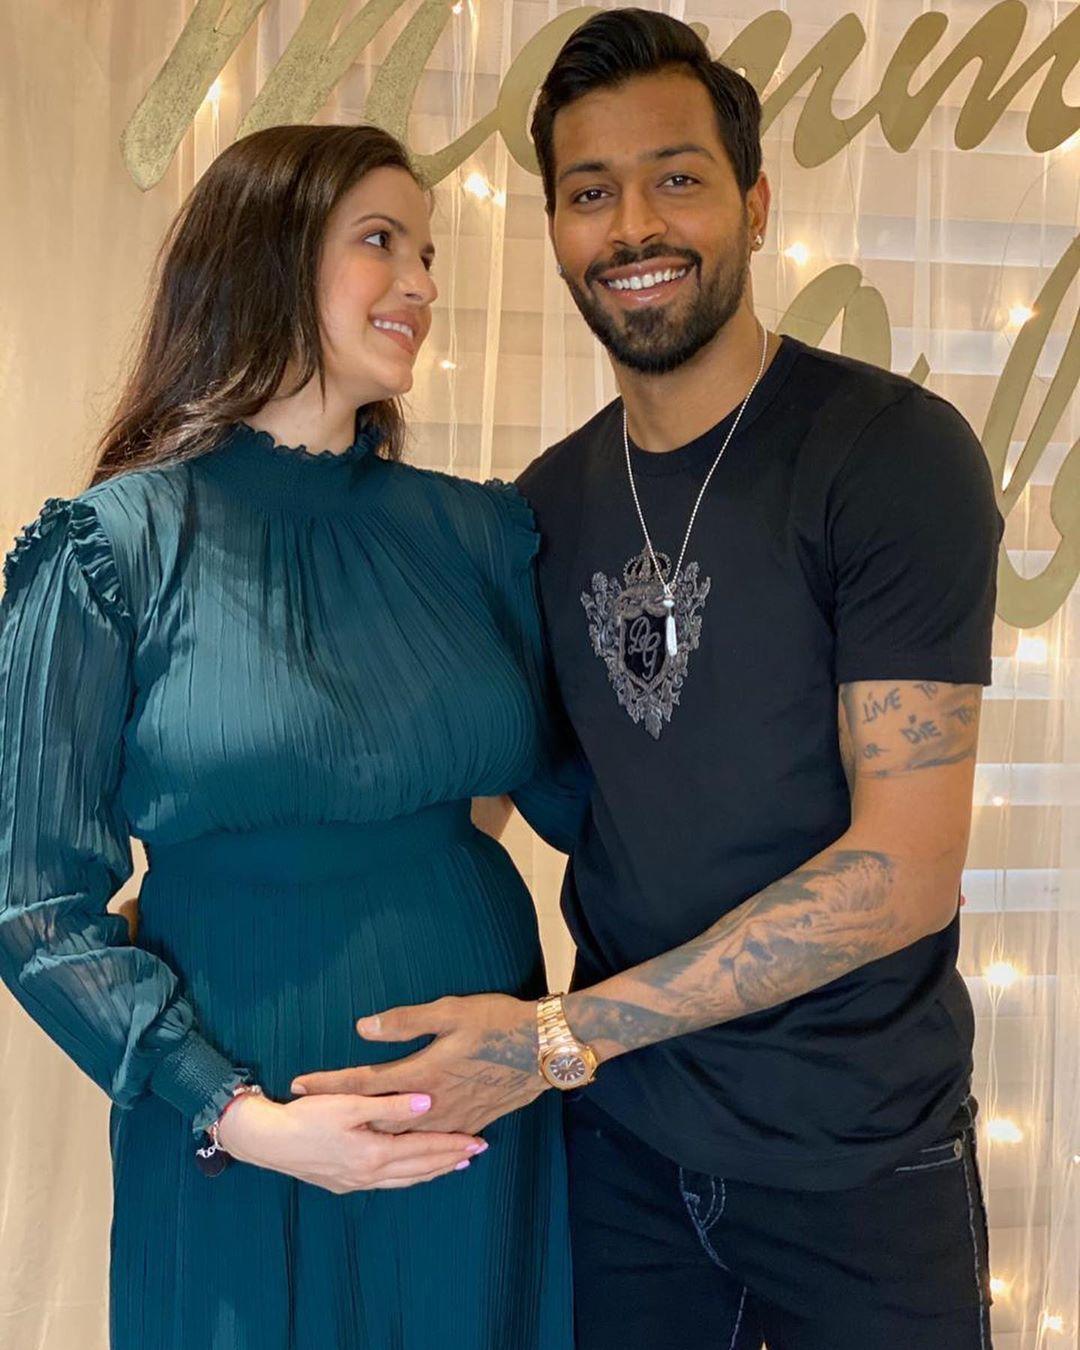 Latest Cricket News Cricketer Hardik Is Seen Resting His Hand Gently On Natasa S Baby Bump As She Lovingl In 2020 Actresses Intimate Wedding Hardik Pandya Girlfriend